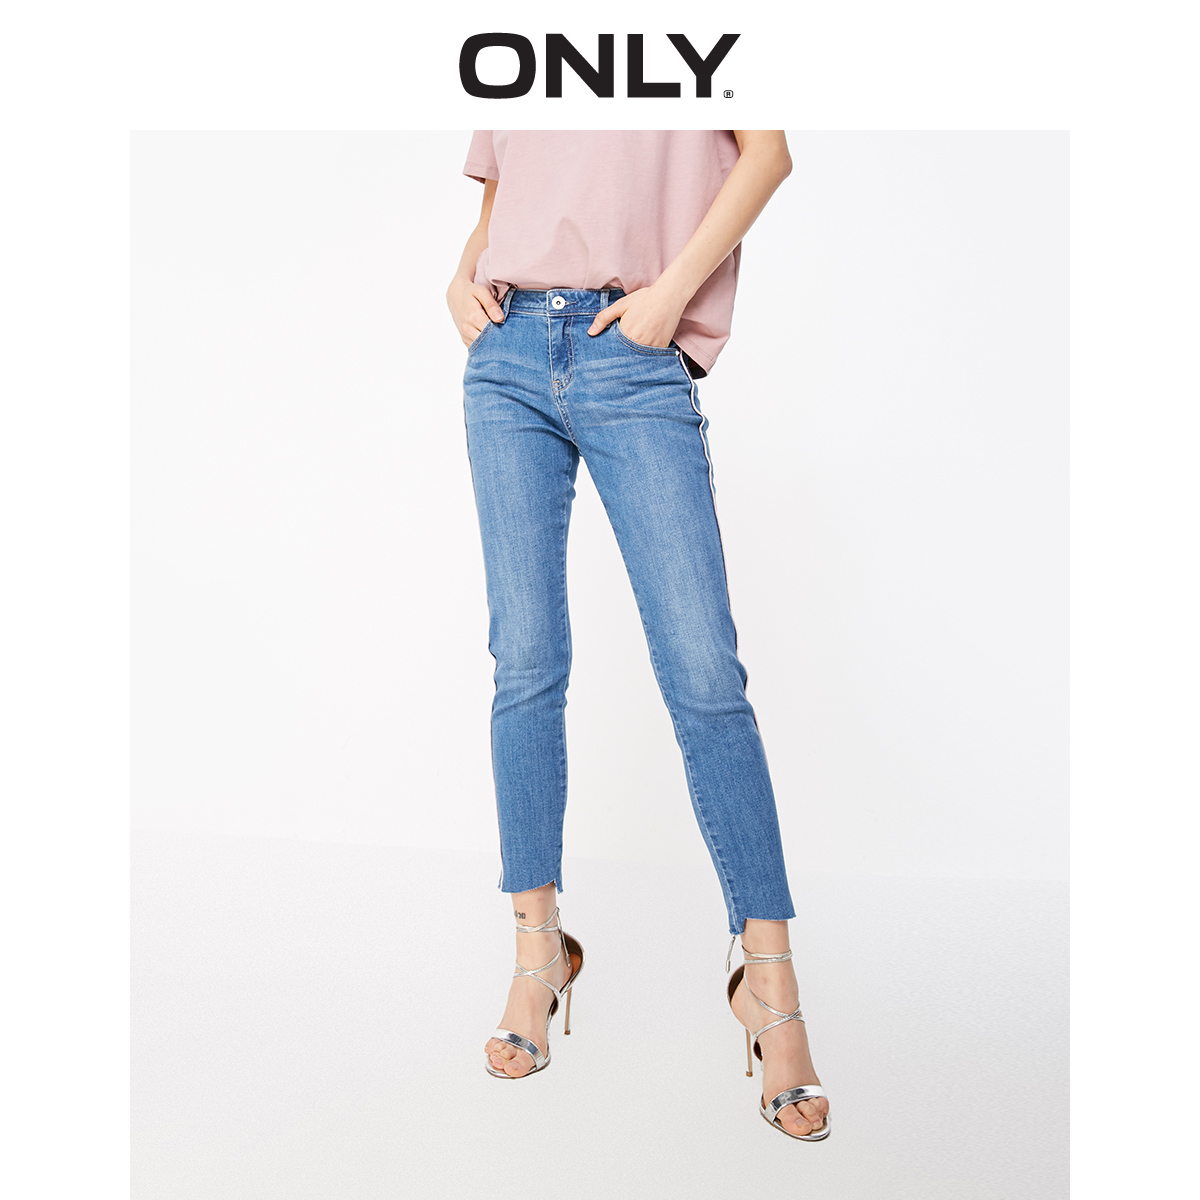 ONLY Women's Low-rise Raw-edge Skinny Crop Jeans | 119149562